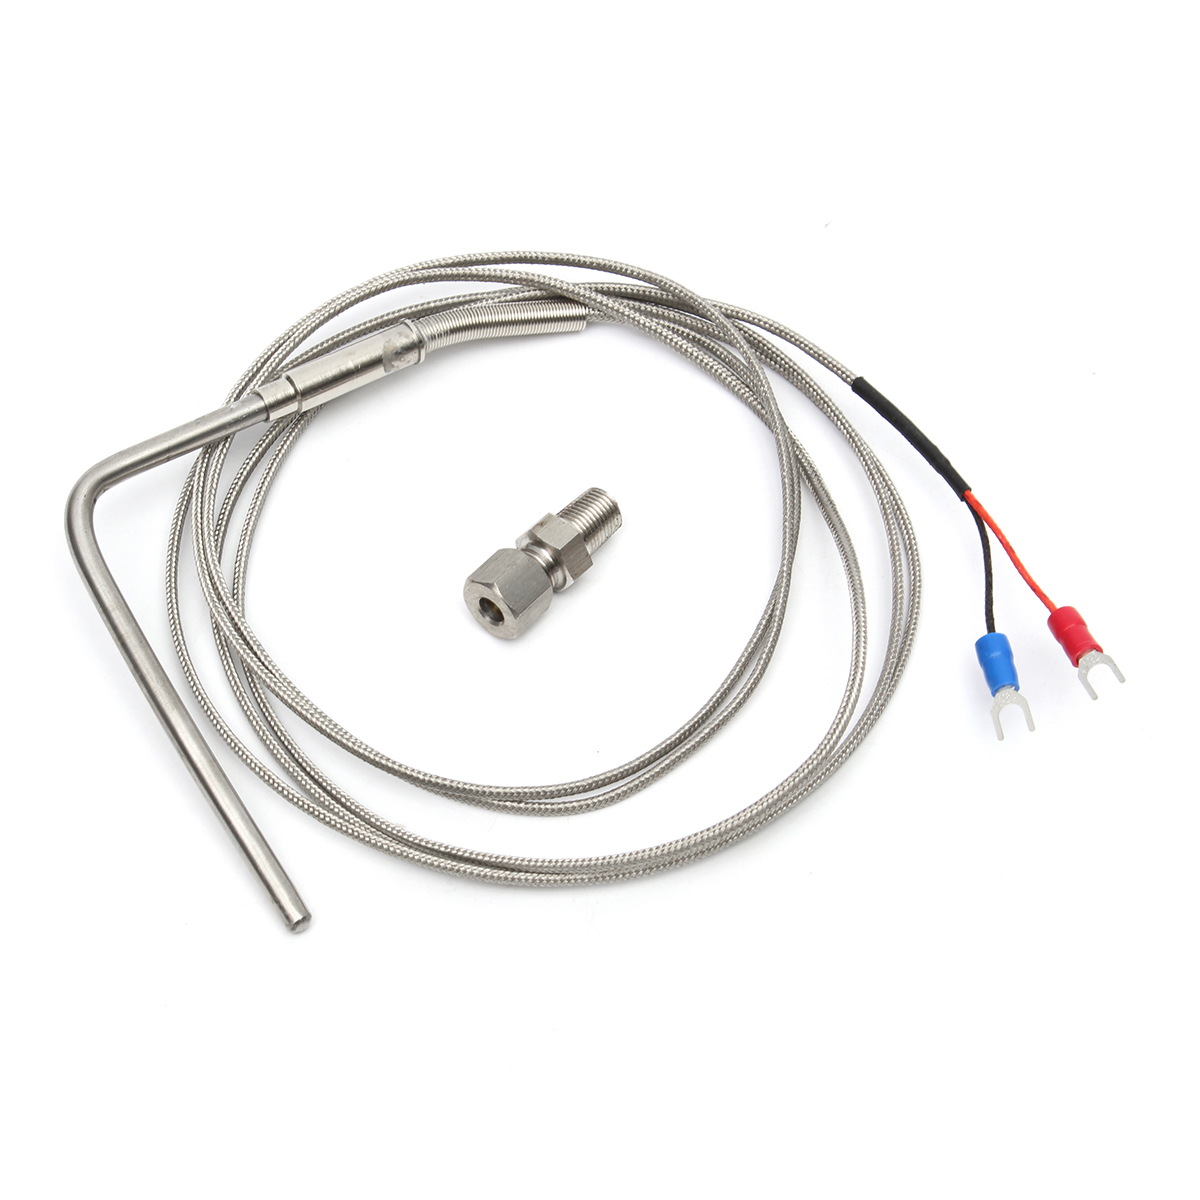 2m Exhaust Gas Temp Sensor Egt K Type Thermocouple Probe